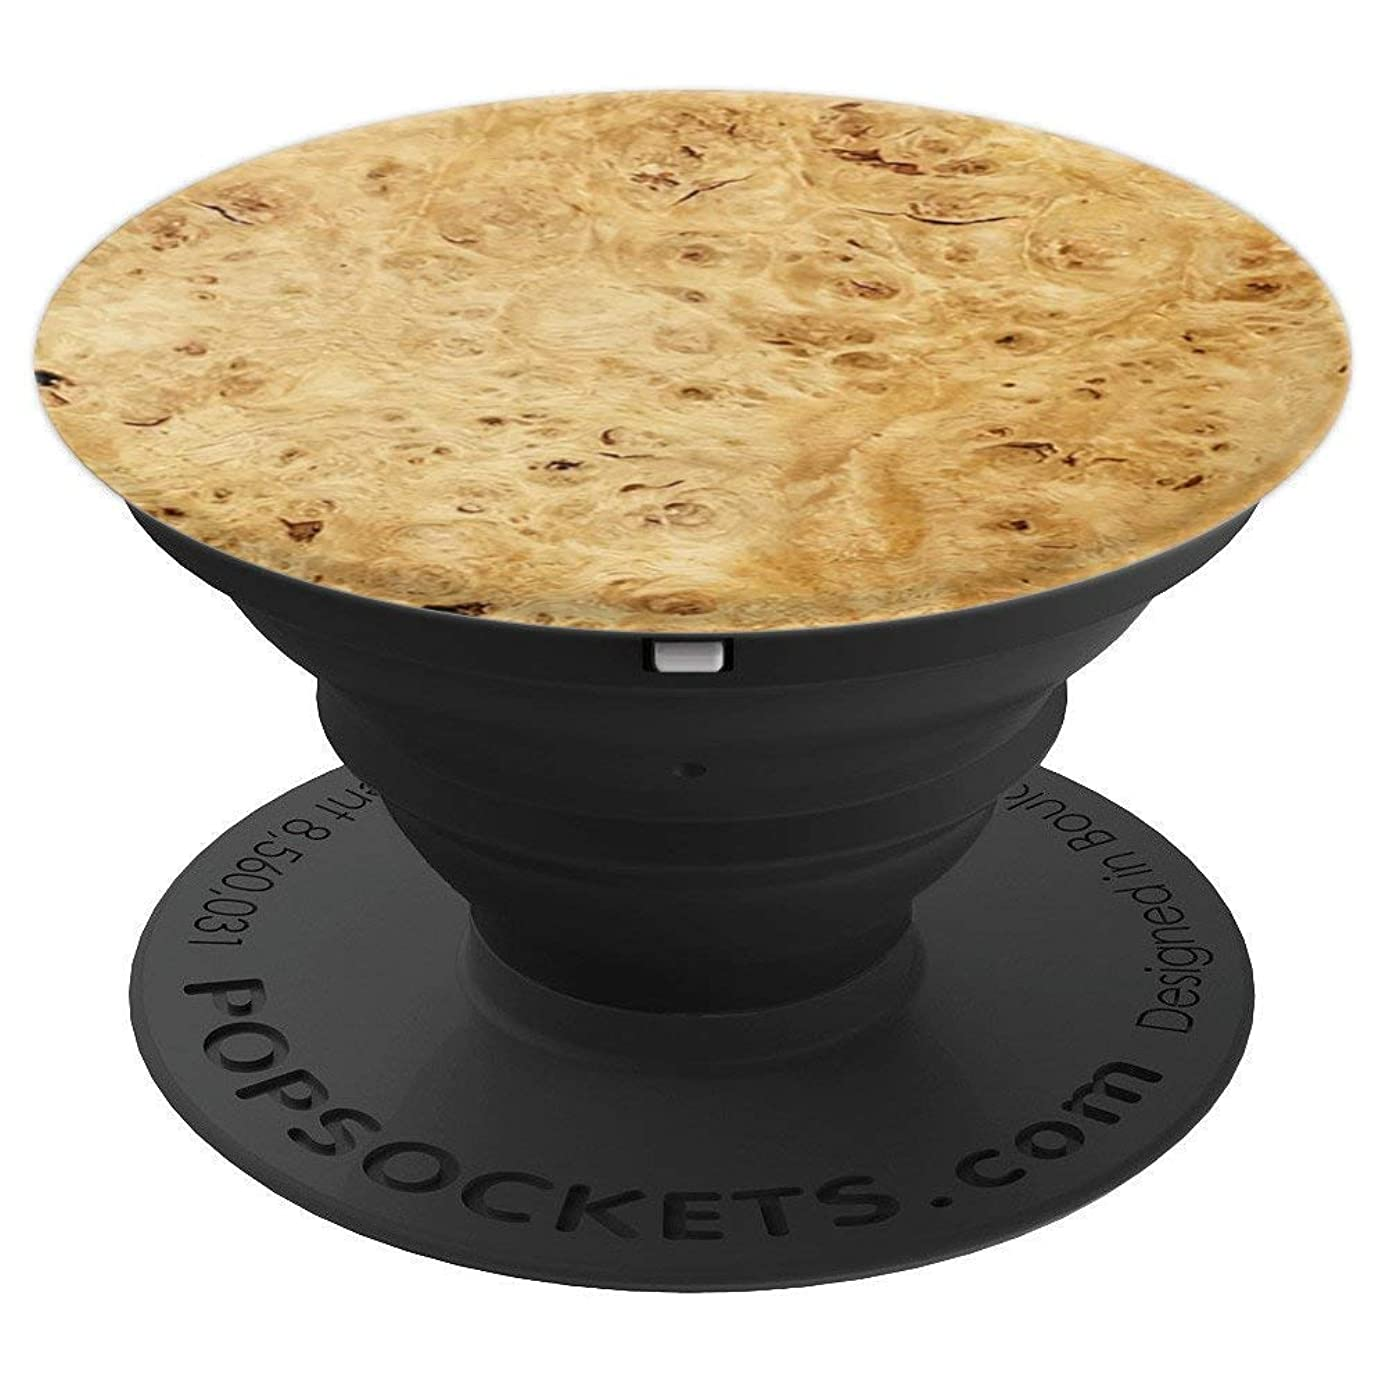 Tree Root Wood Style Grain Boards Hiking Mount Outdoor Grip - PopSockets Grip and Stand for Phones and Tablets unt7809128